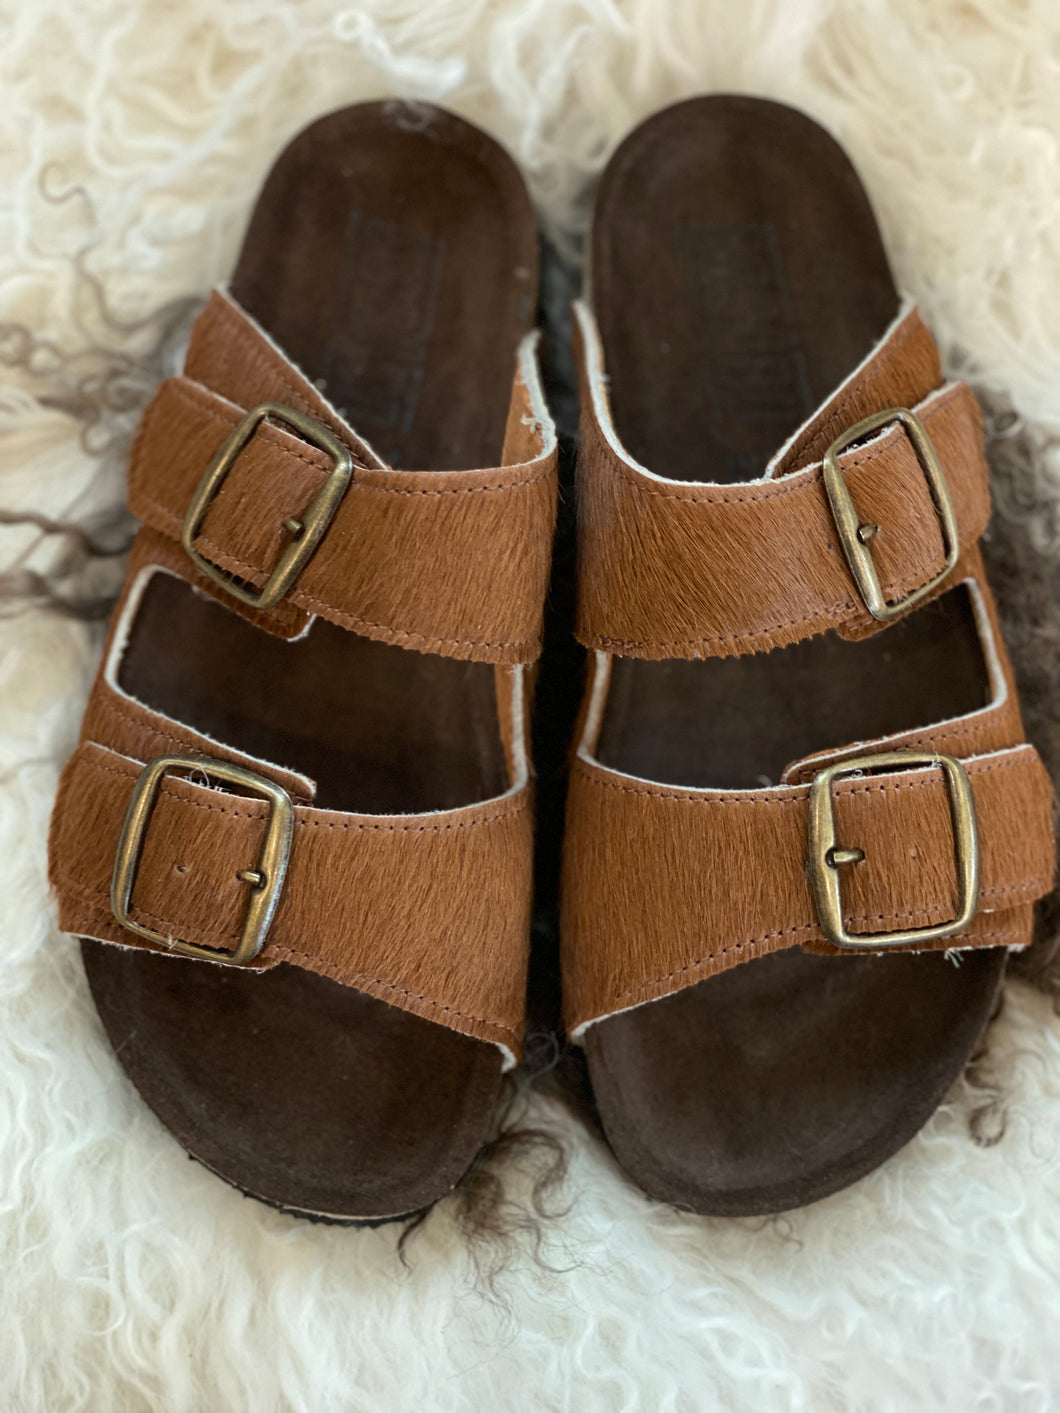 Tabacco double buckle sandals